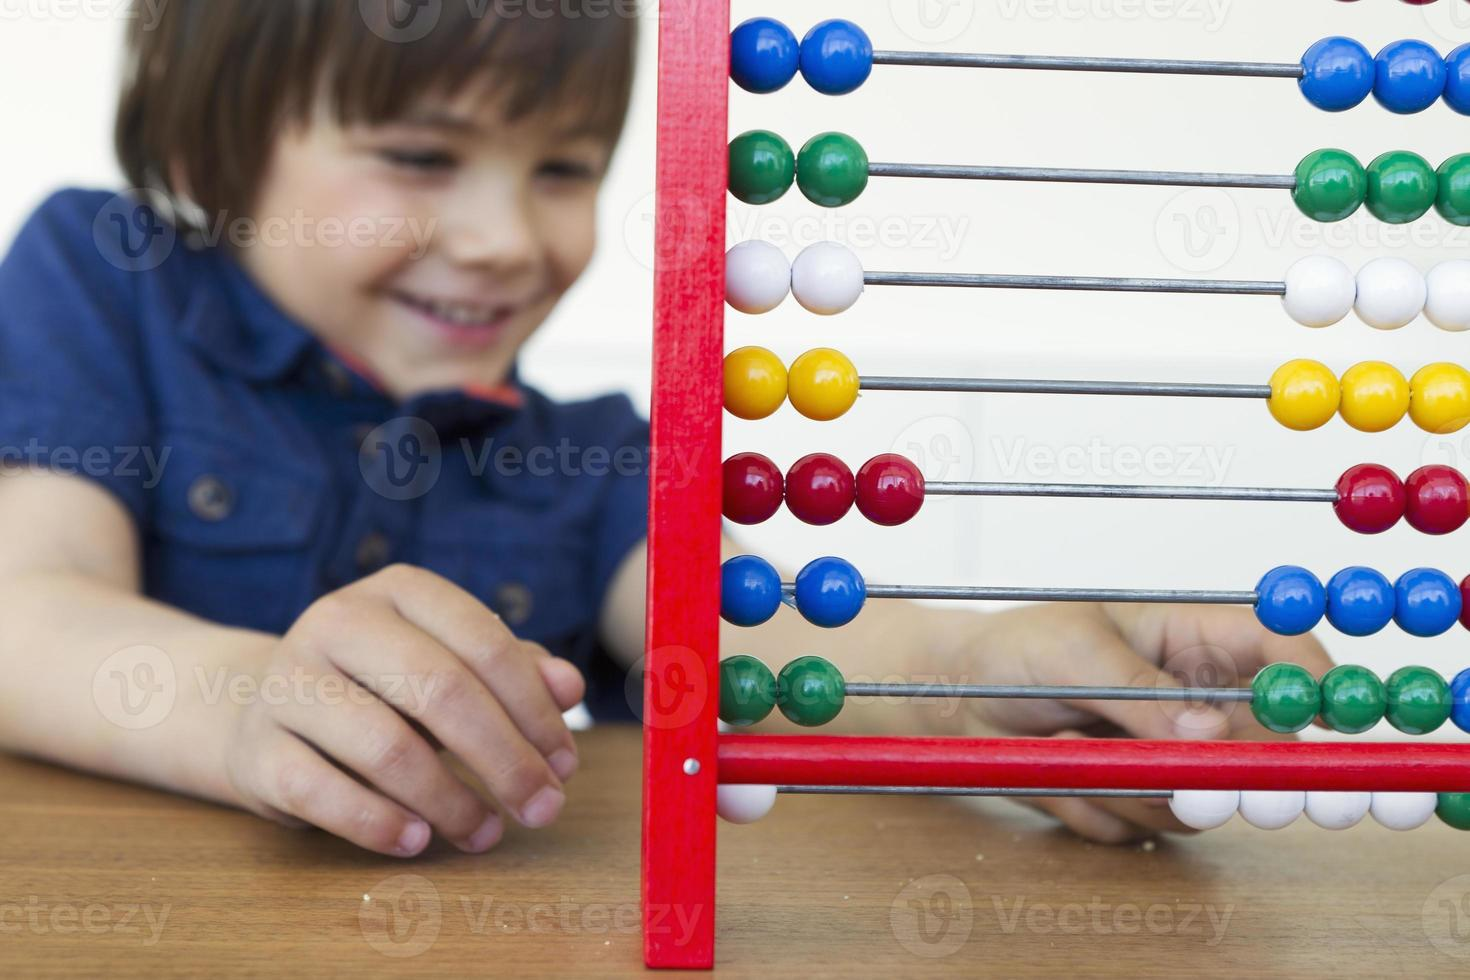 Smiling boy playing with abacus photo